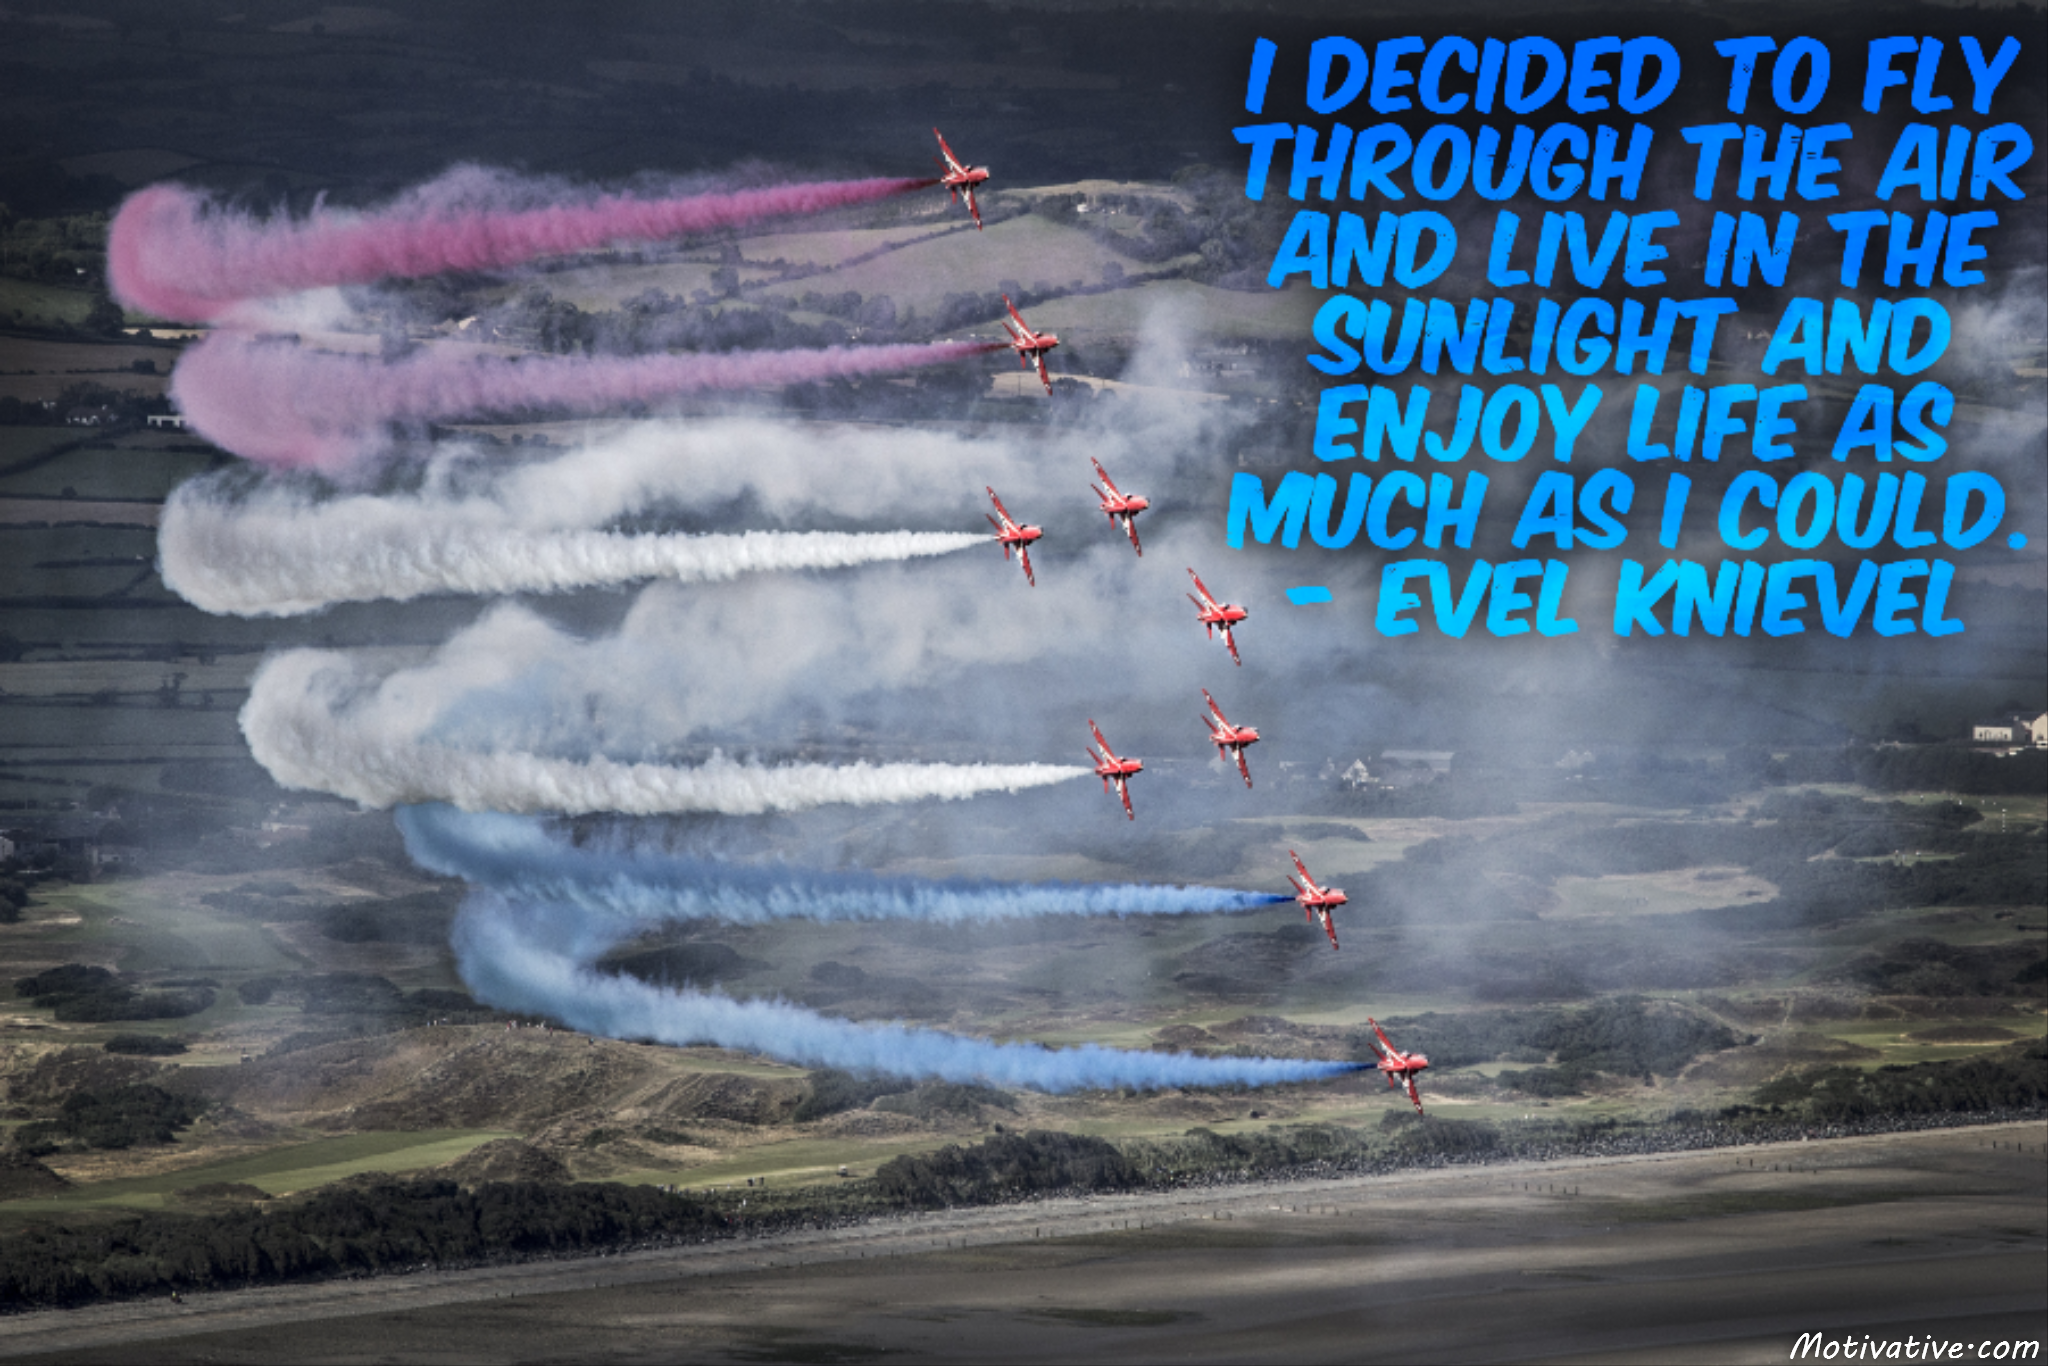 I decided to fly through the air and live in the sunlight and enjoy life as much as I could. – Evel Knievel